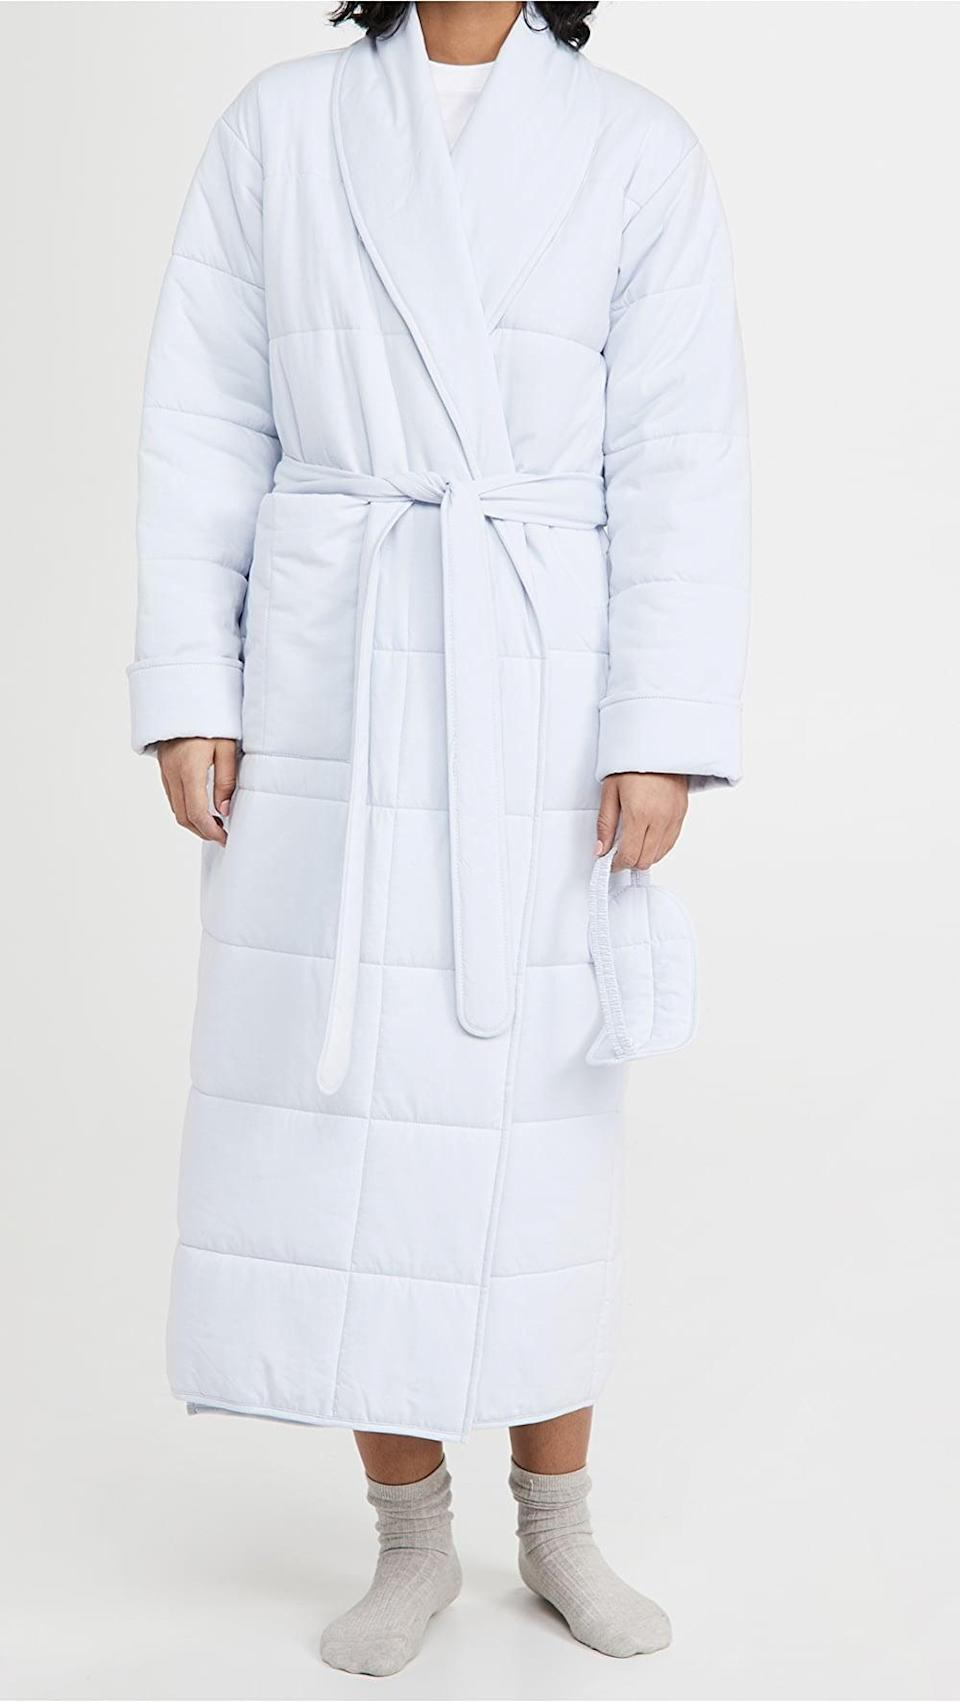 <p>This <span>Skin Sierra Robe with Eyemask</span> ($225) is looks stylish and is warm.</p>